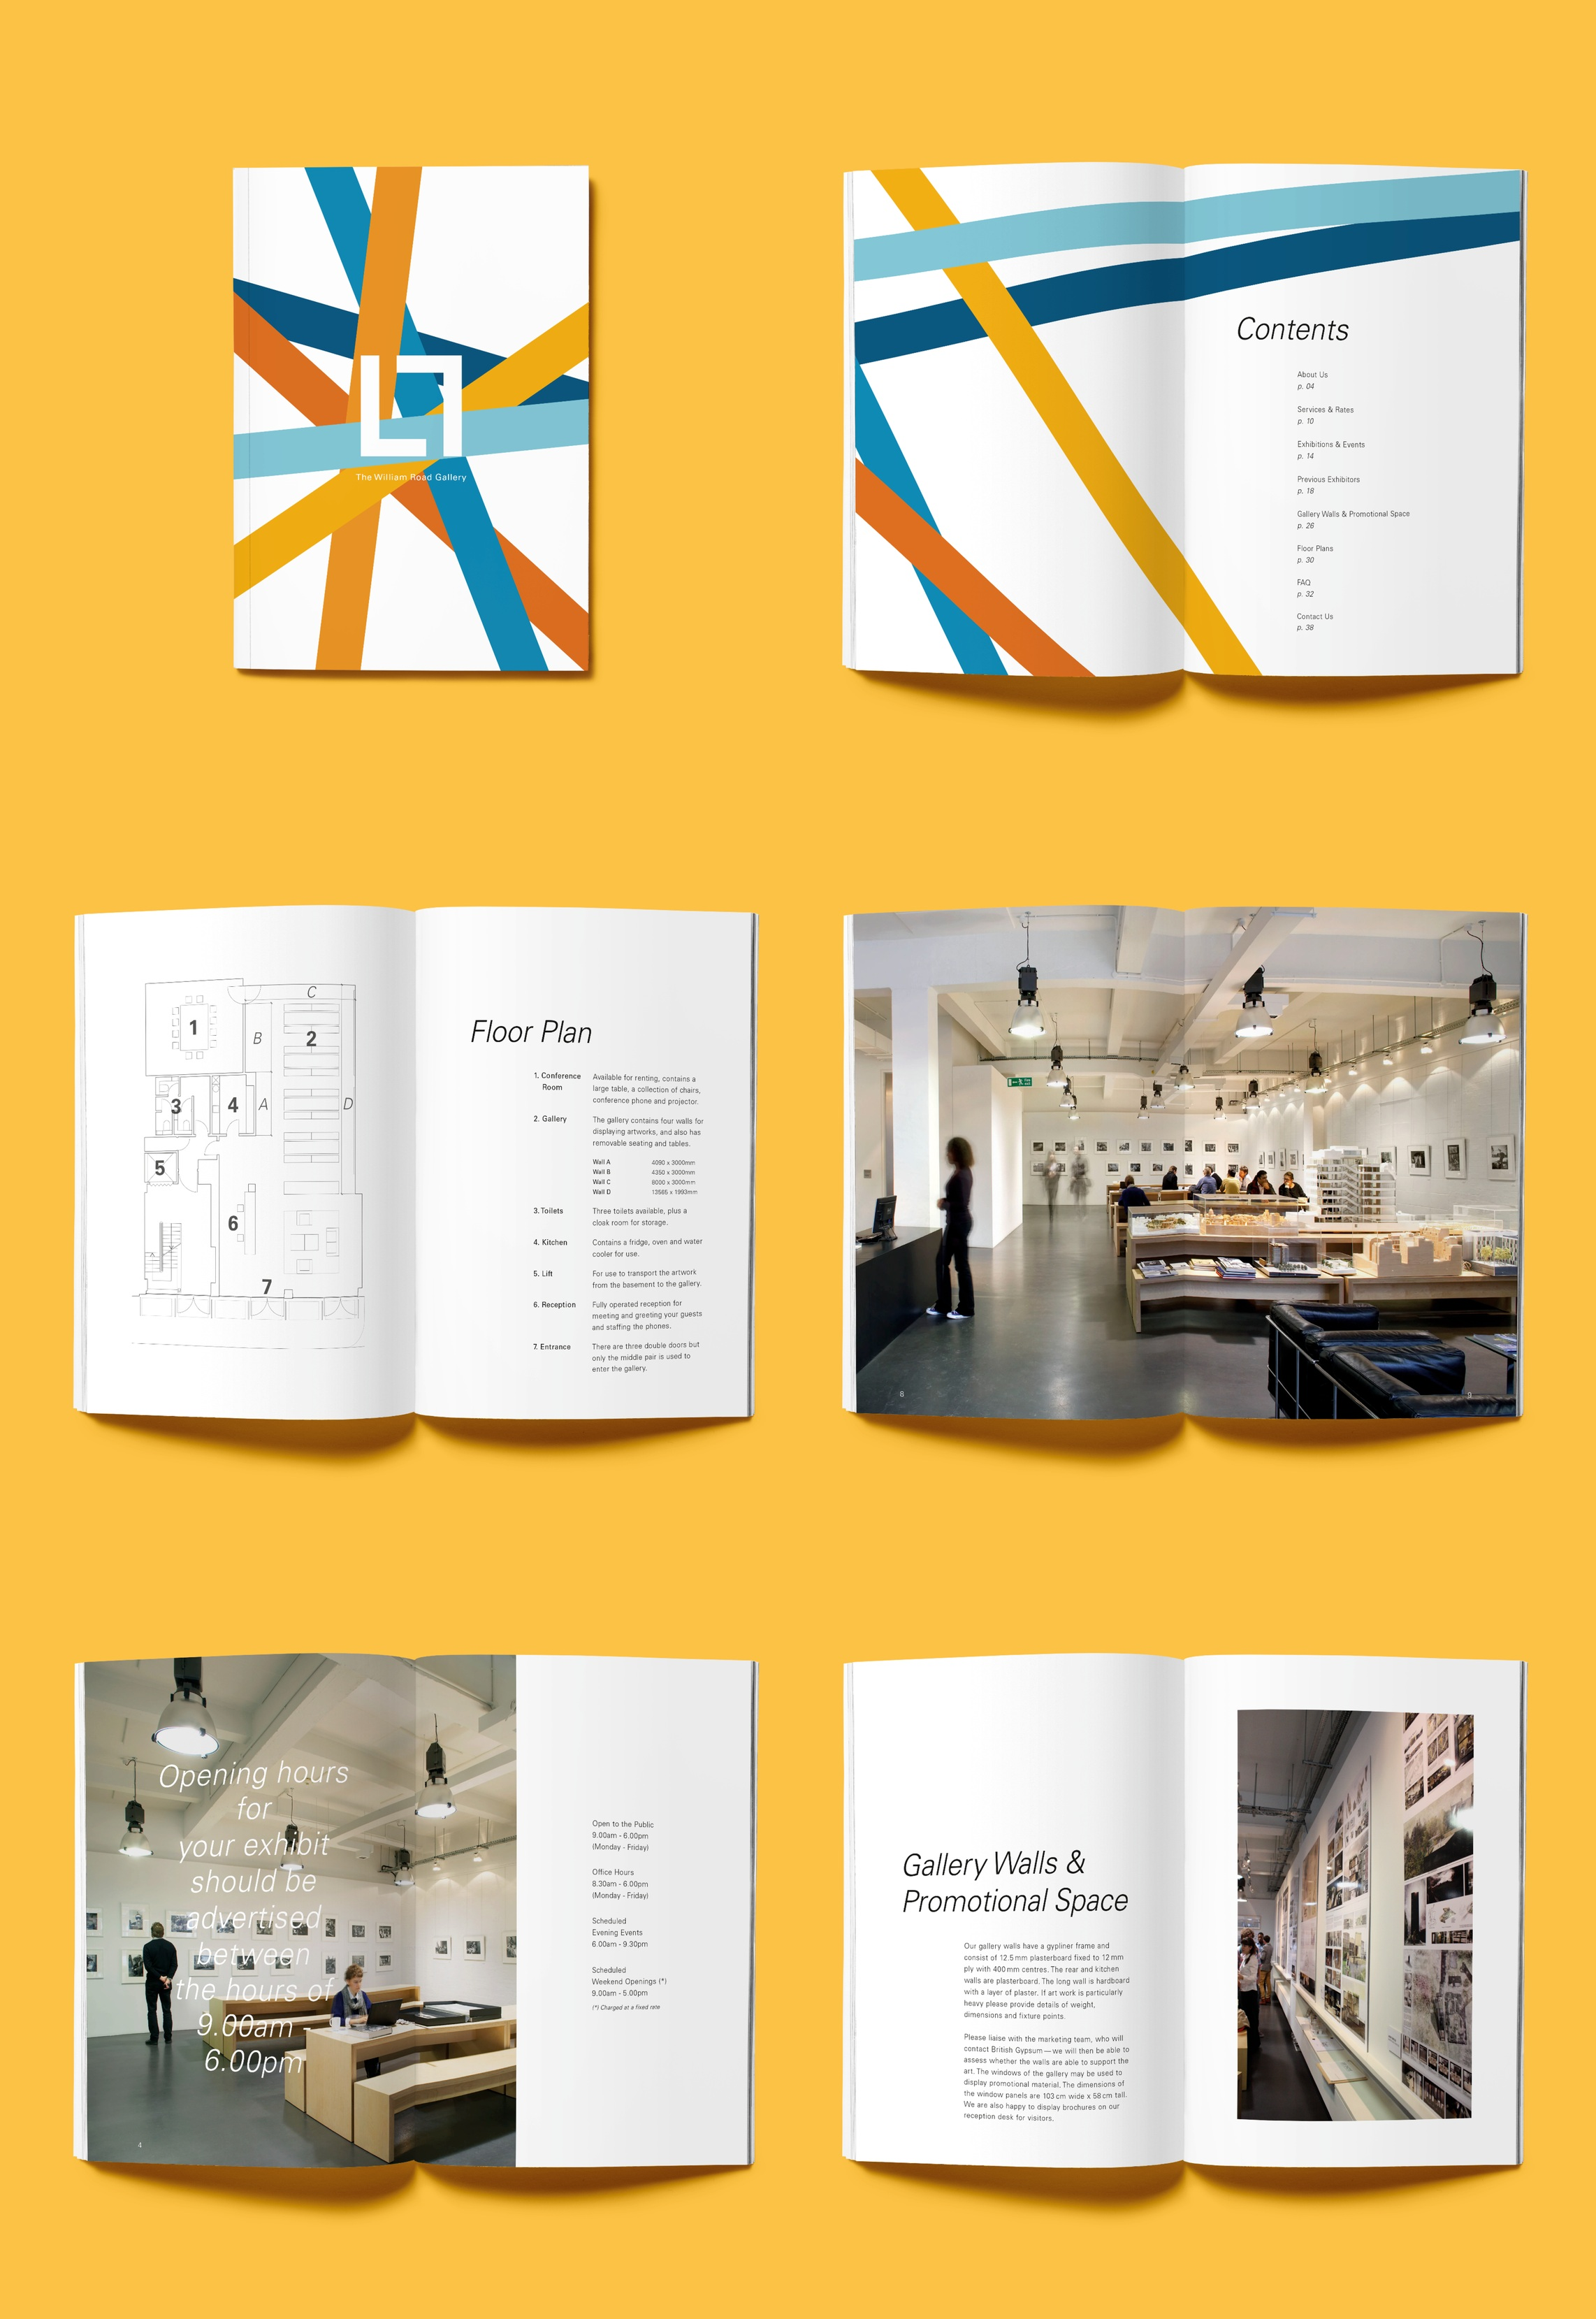 Yellow+Pages2.jpg